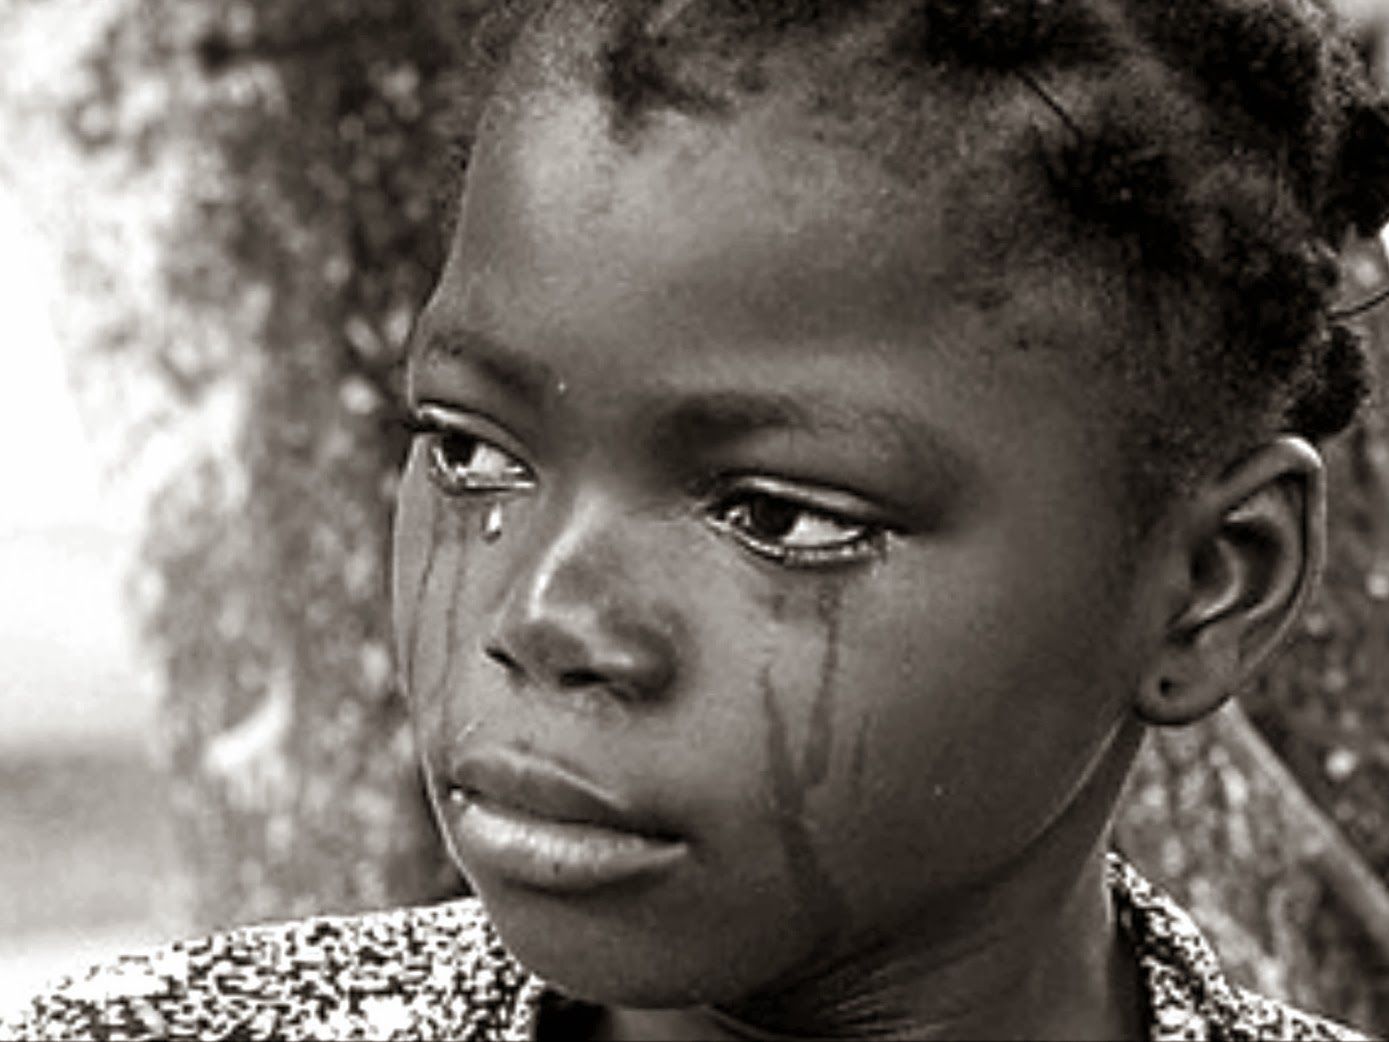 Mauritanian girl crying